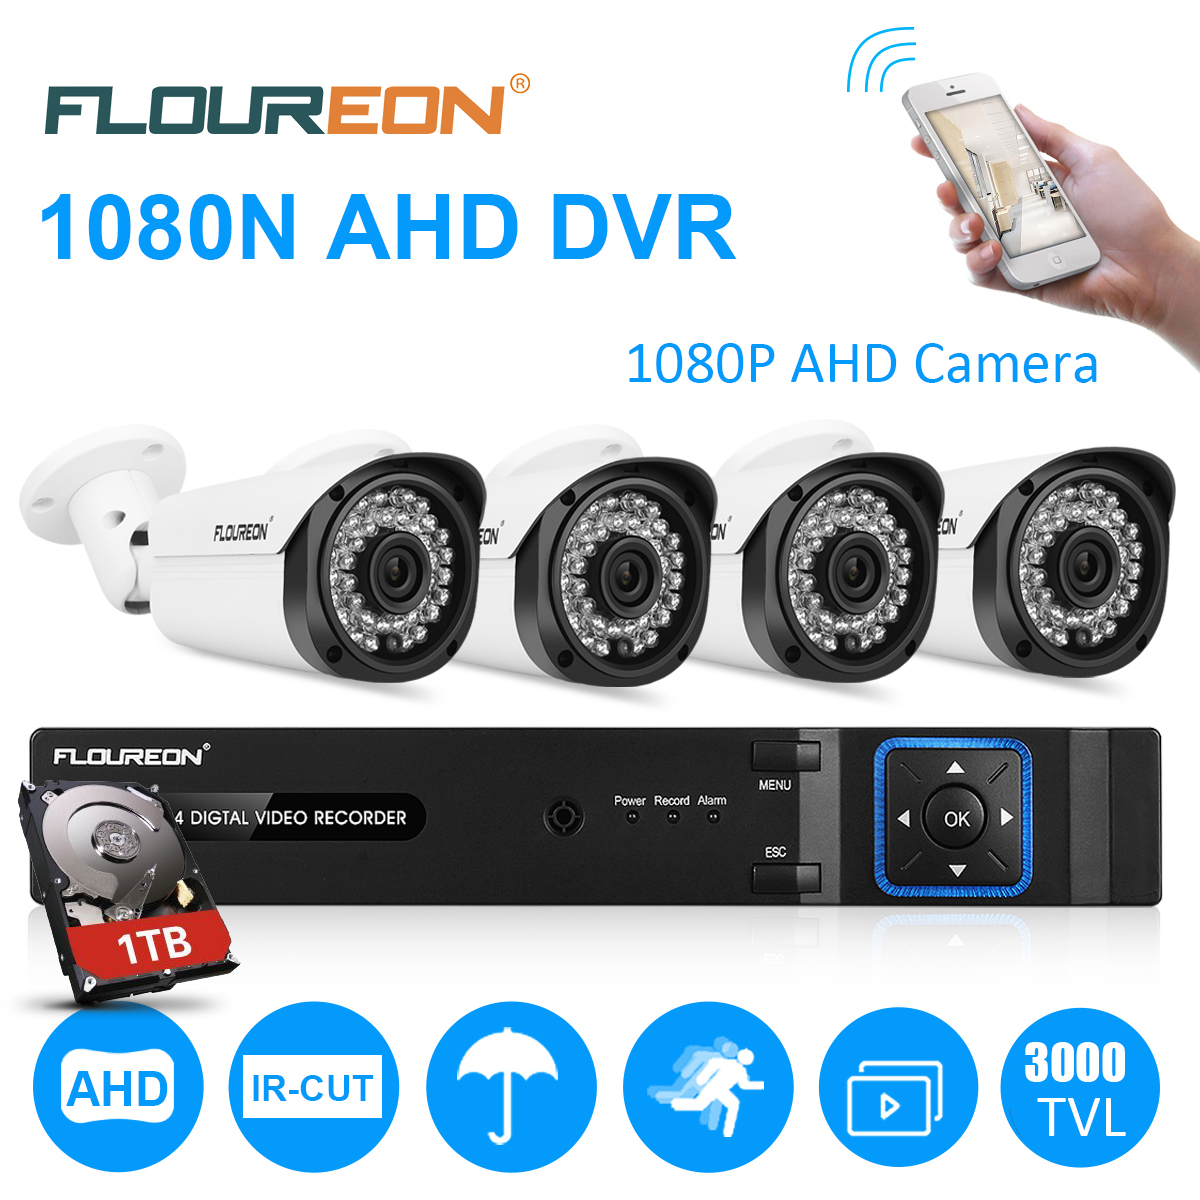 FLOUREON 8CH Security Camera System HD-TVI 1080N Video DVR Recorder with 4X HD 3000TVL 1080P Indoor Outdoor Weatherproof CCTV Cameras 1TB Hard Drive,Motion Alert, Smartphone, PC Easy Remote Access